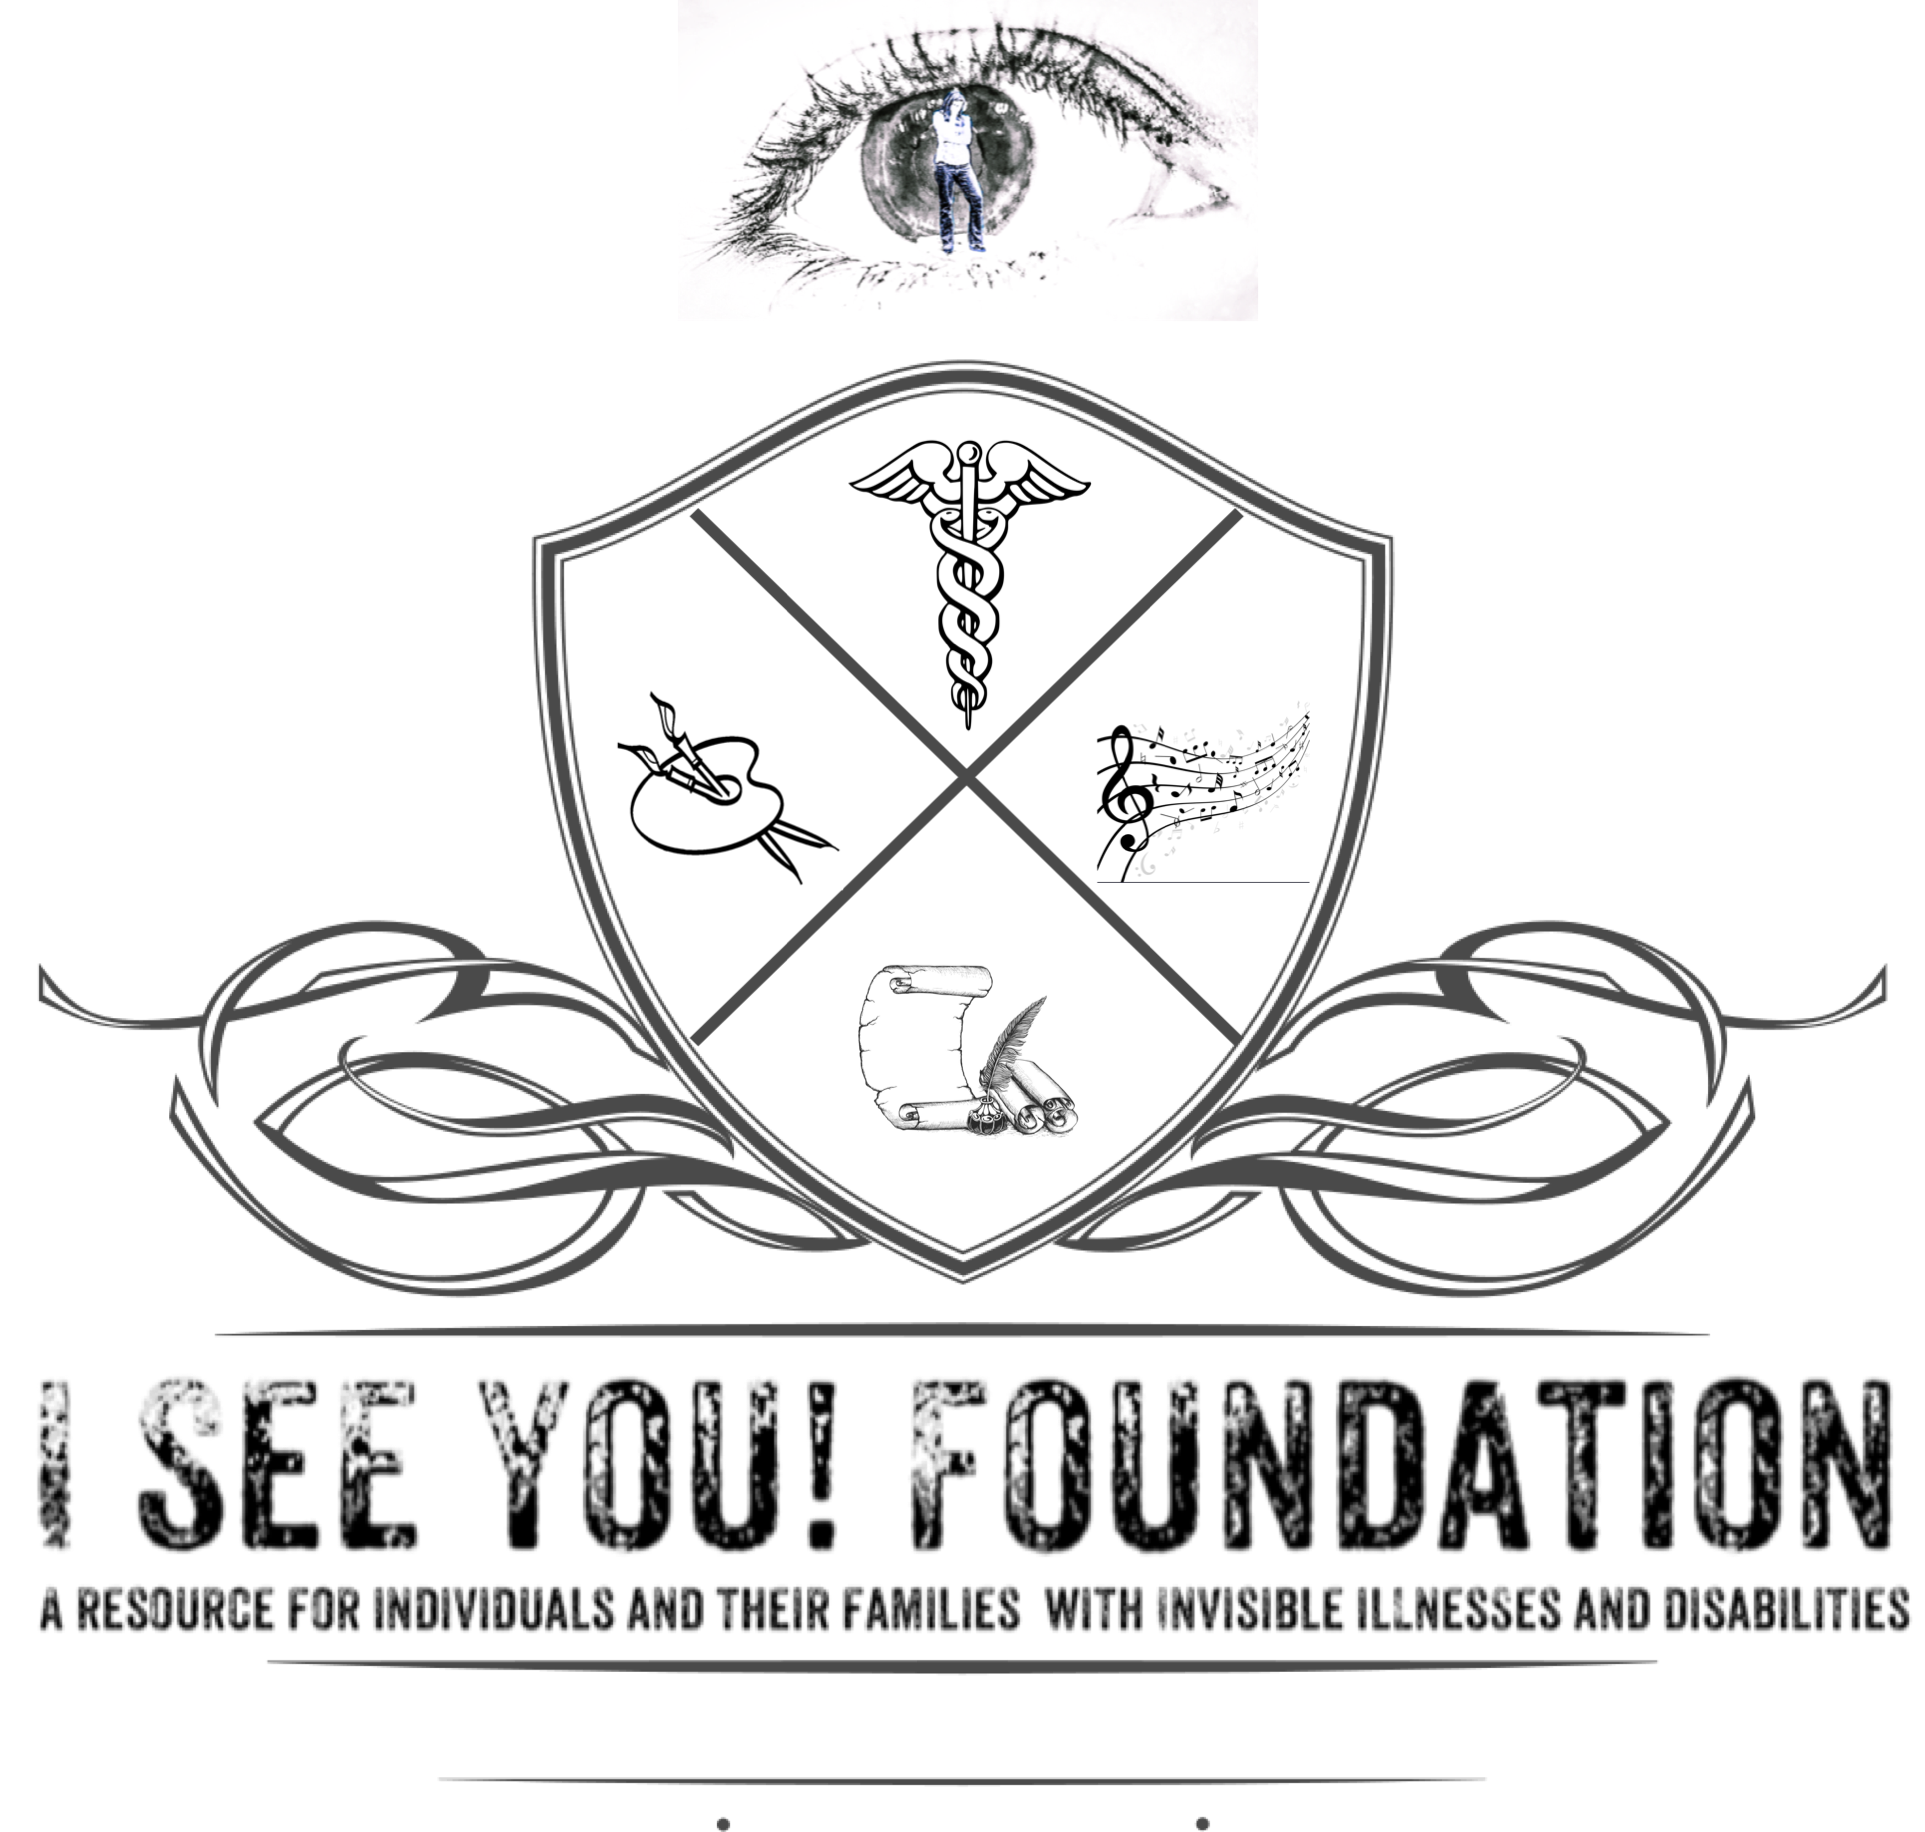 I See You! Foundation